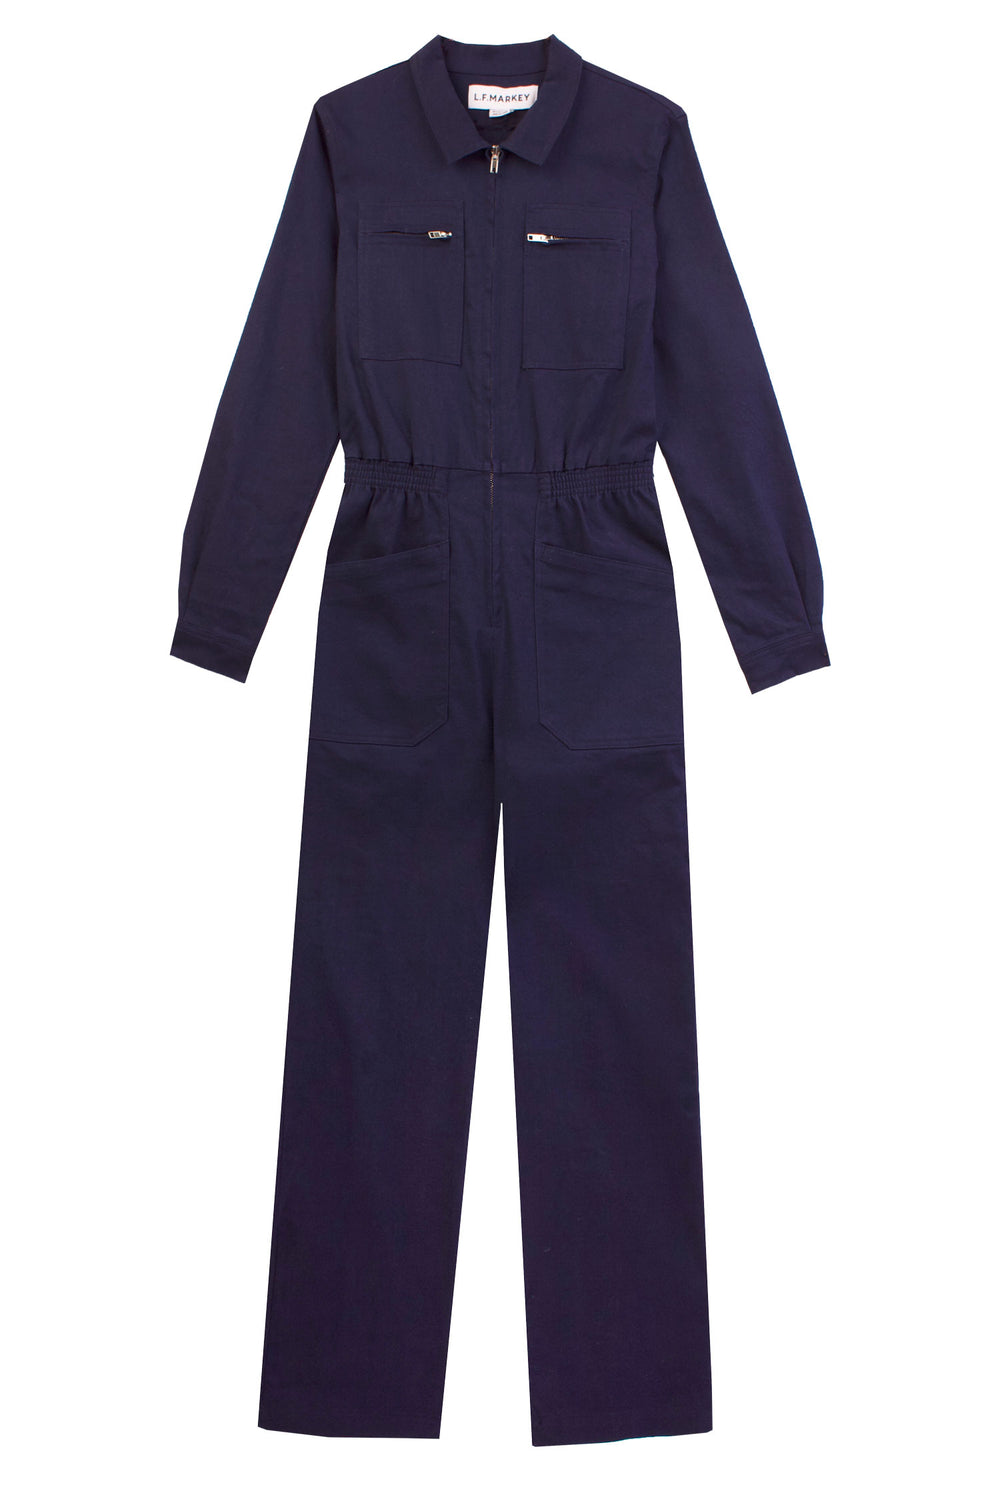 Danny Longsleeve Boilersuit Navy